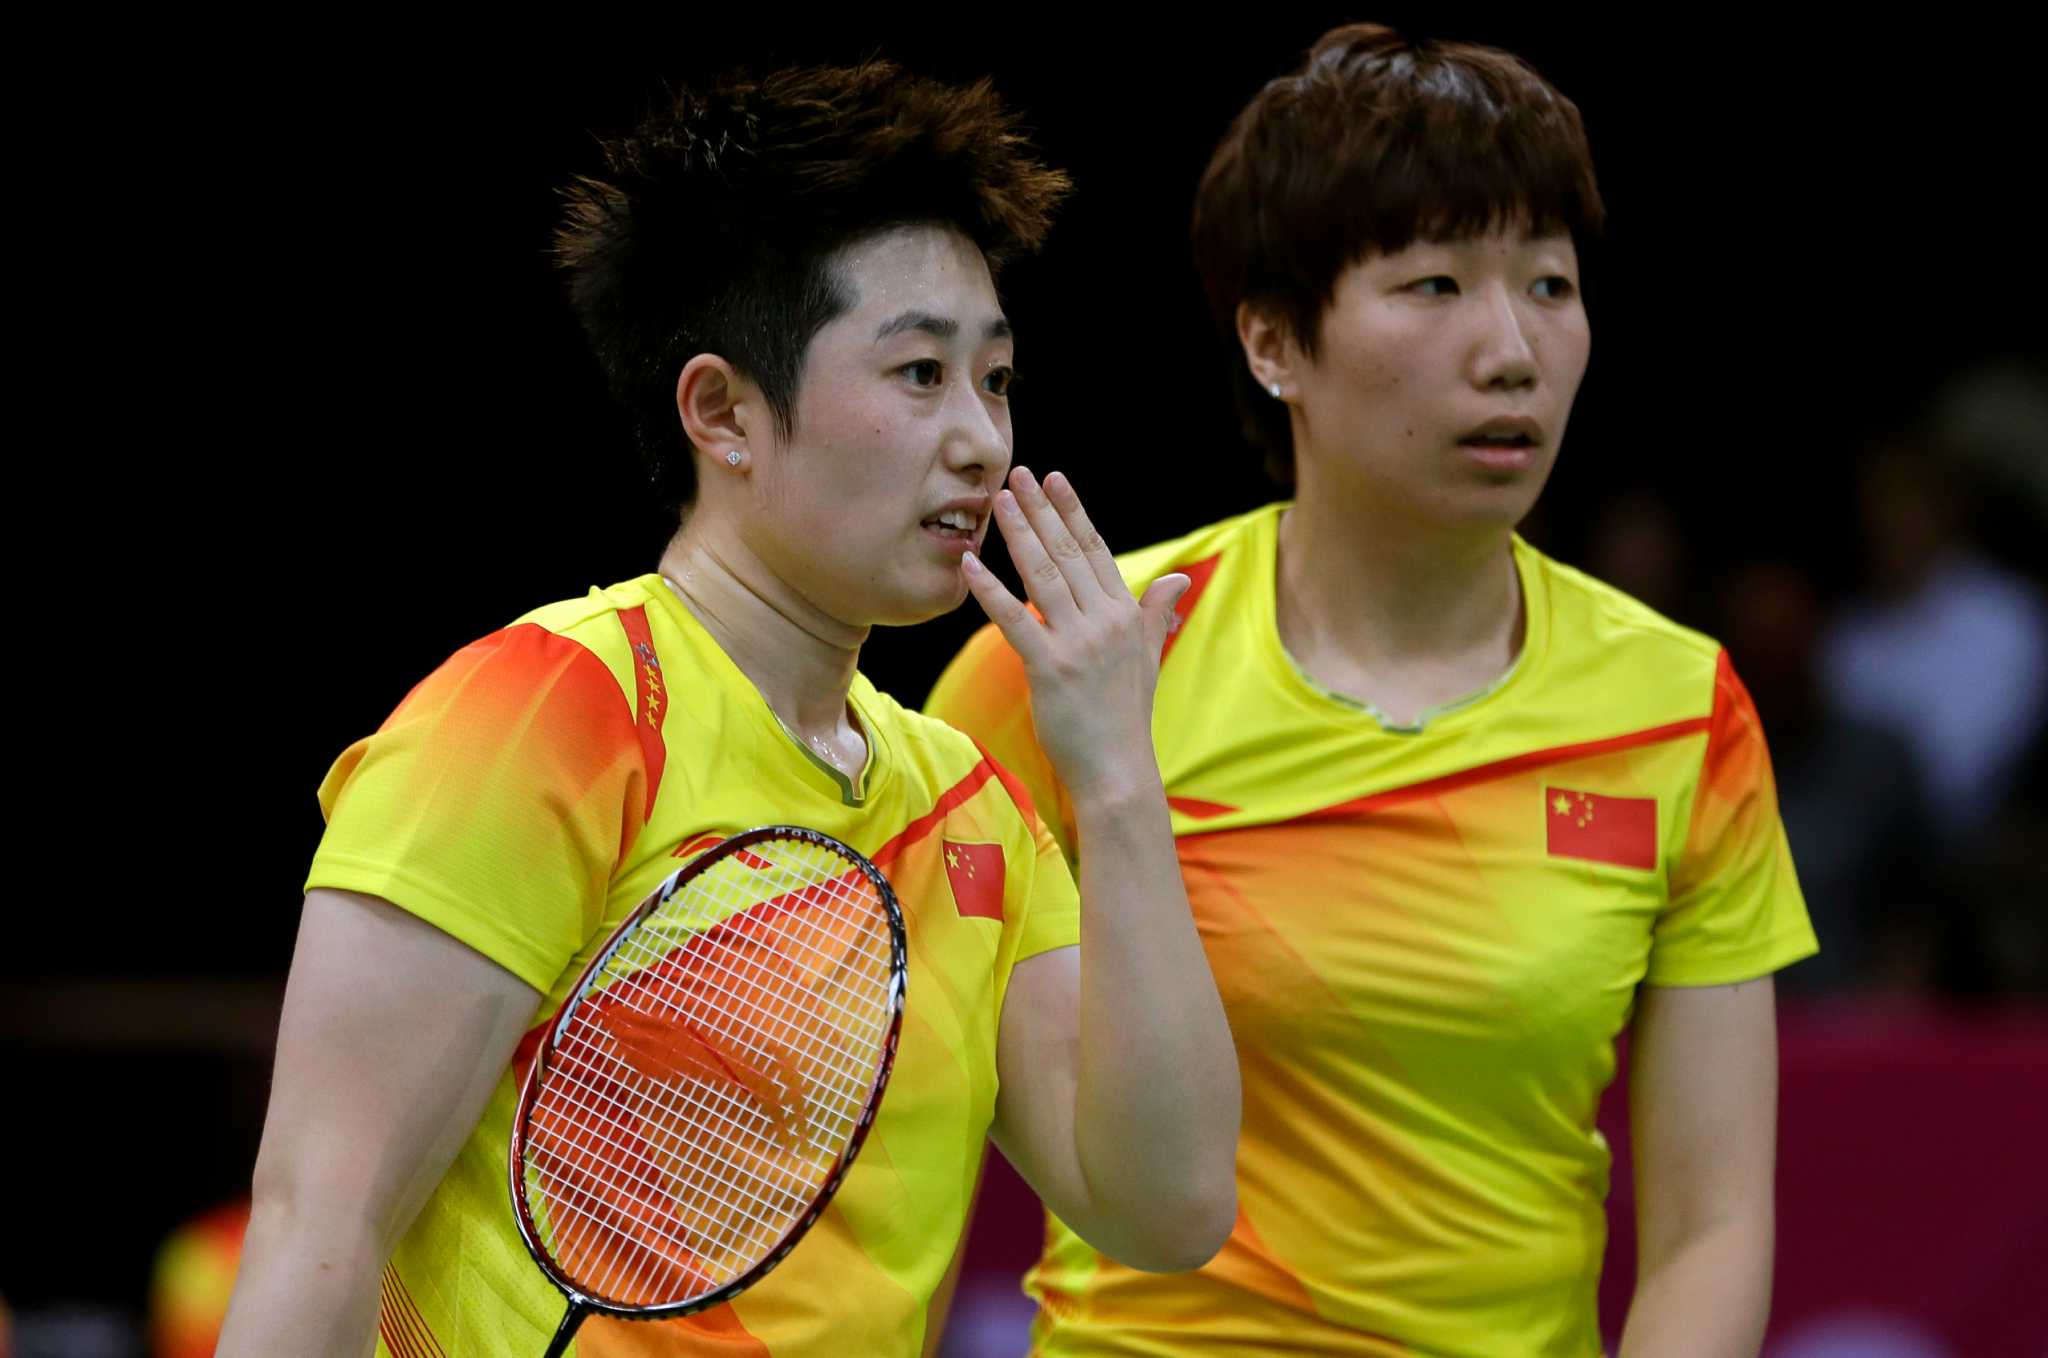 8 badminton players tossed from Olympic doubles Times Union